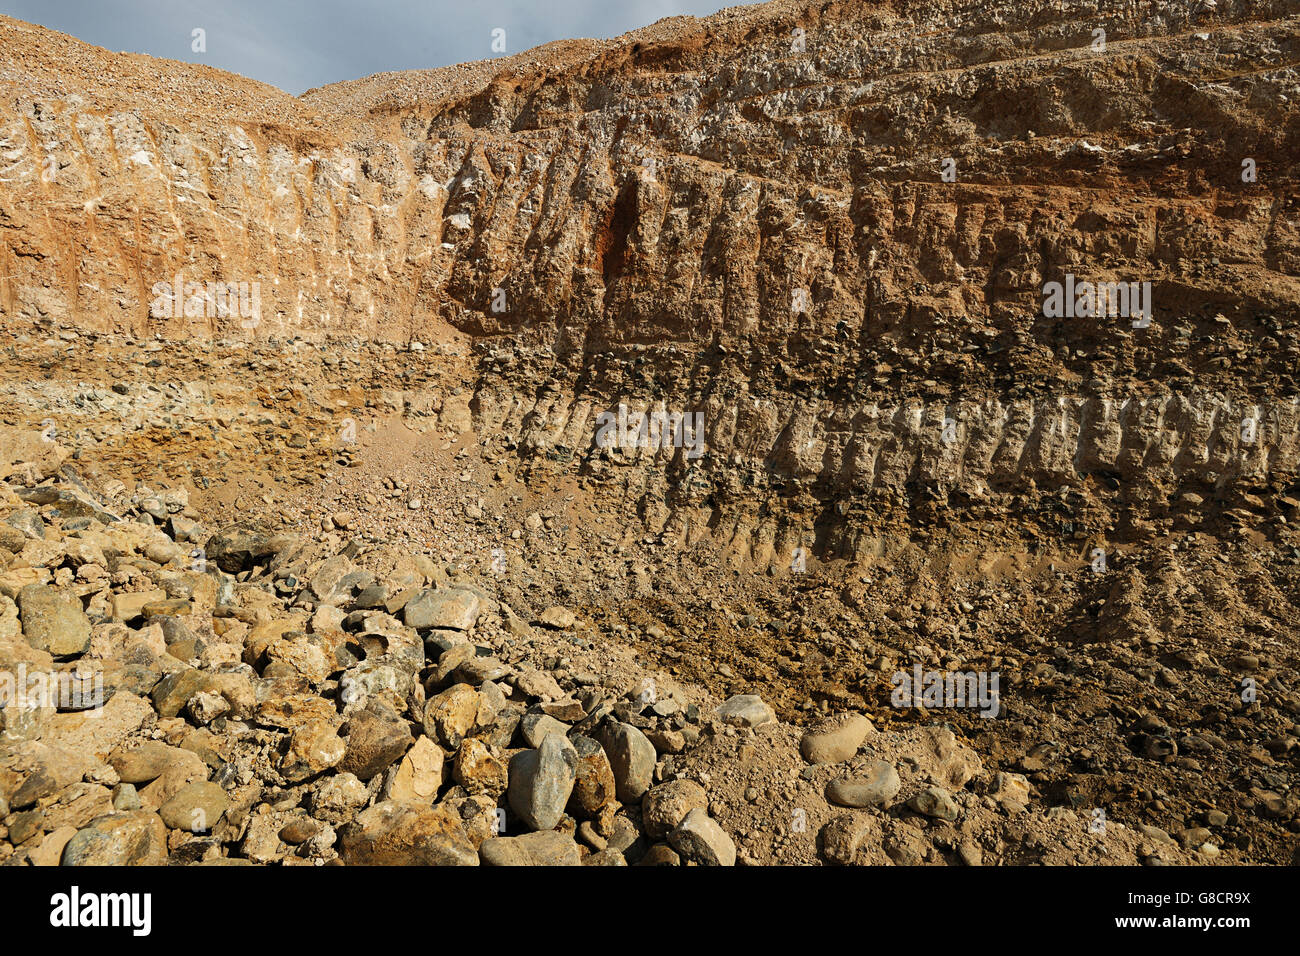 Alluvial Diamond Layers Mining Site Western Cape South